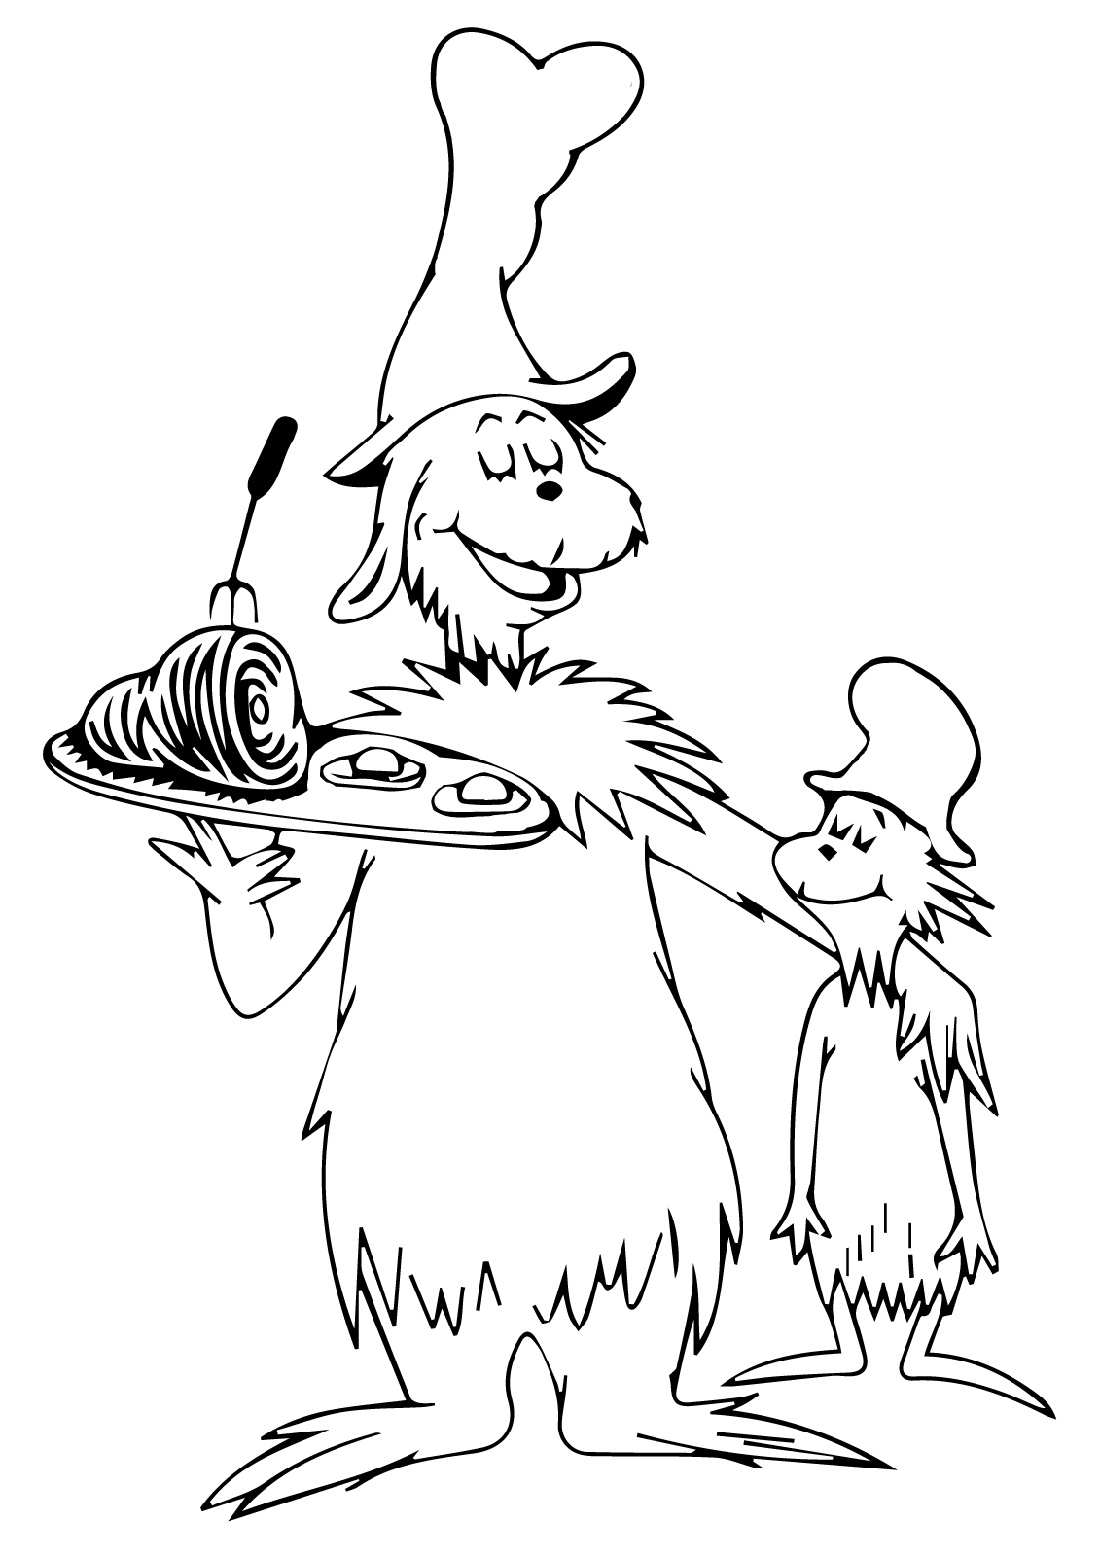 green eggs and ham coloring sheets i would not could not with goat coloring page free sheets eggs coloring and ham green